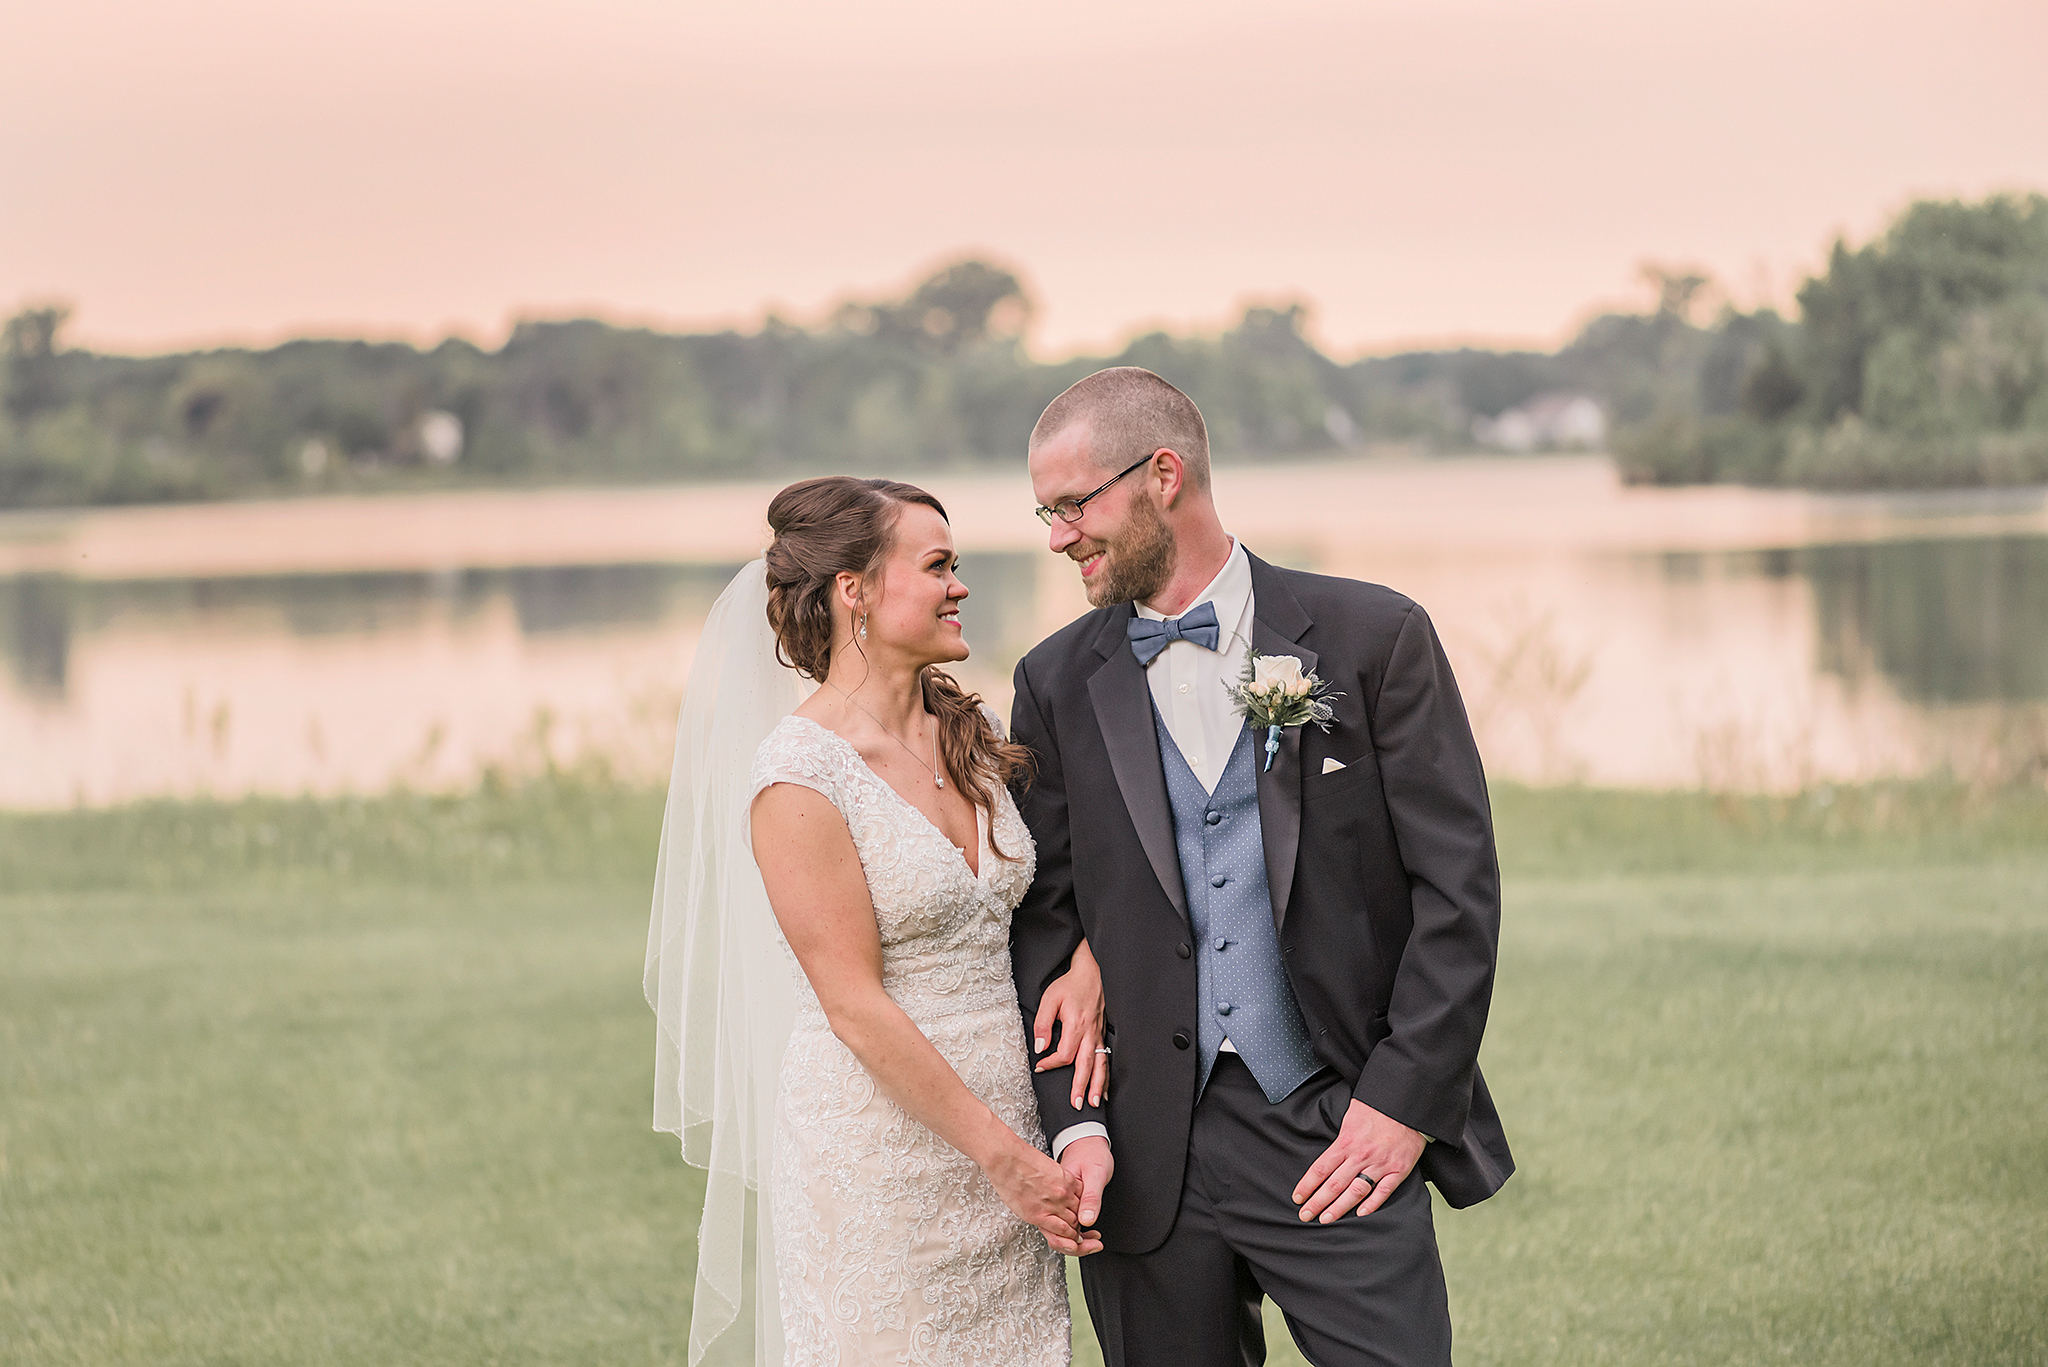 Lindsay-Adkins-Photography-Michigan-Wedding-Photographer-Sauk-Valley-Brooklyn-Michigan45